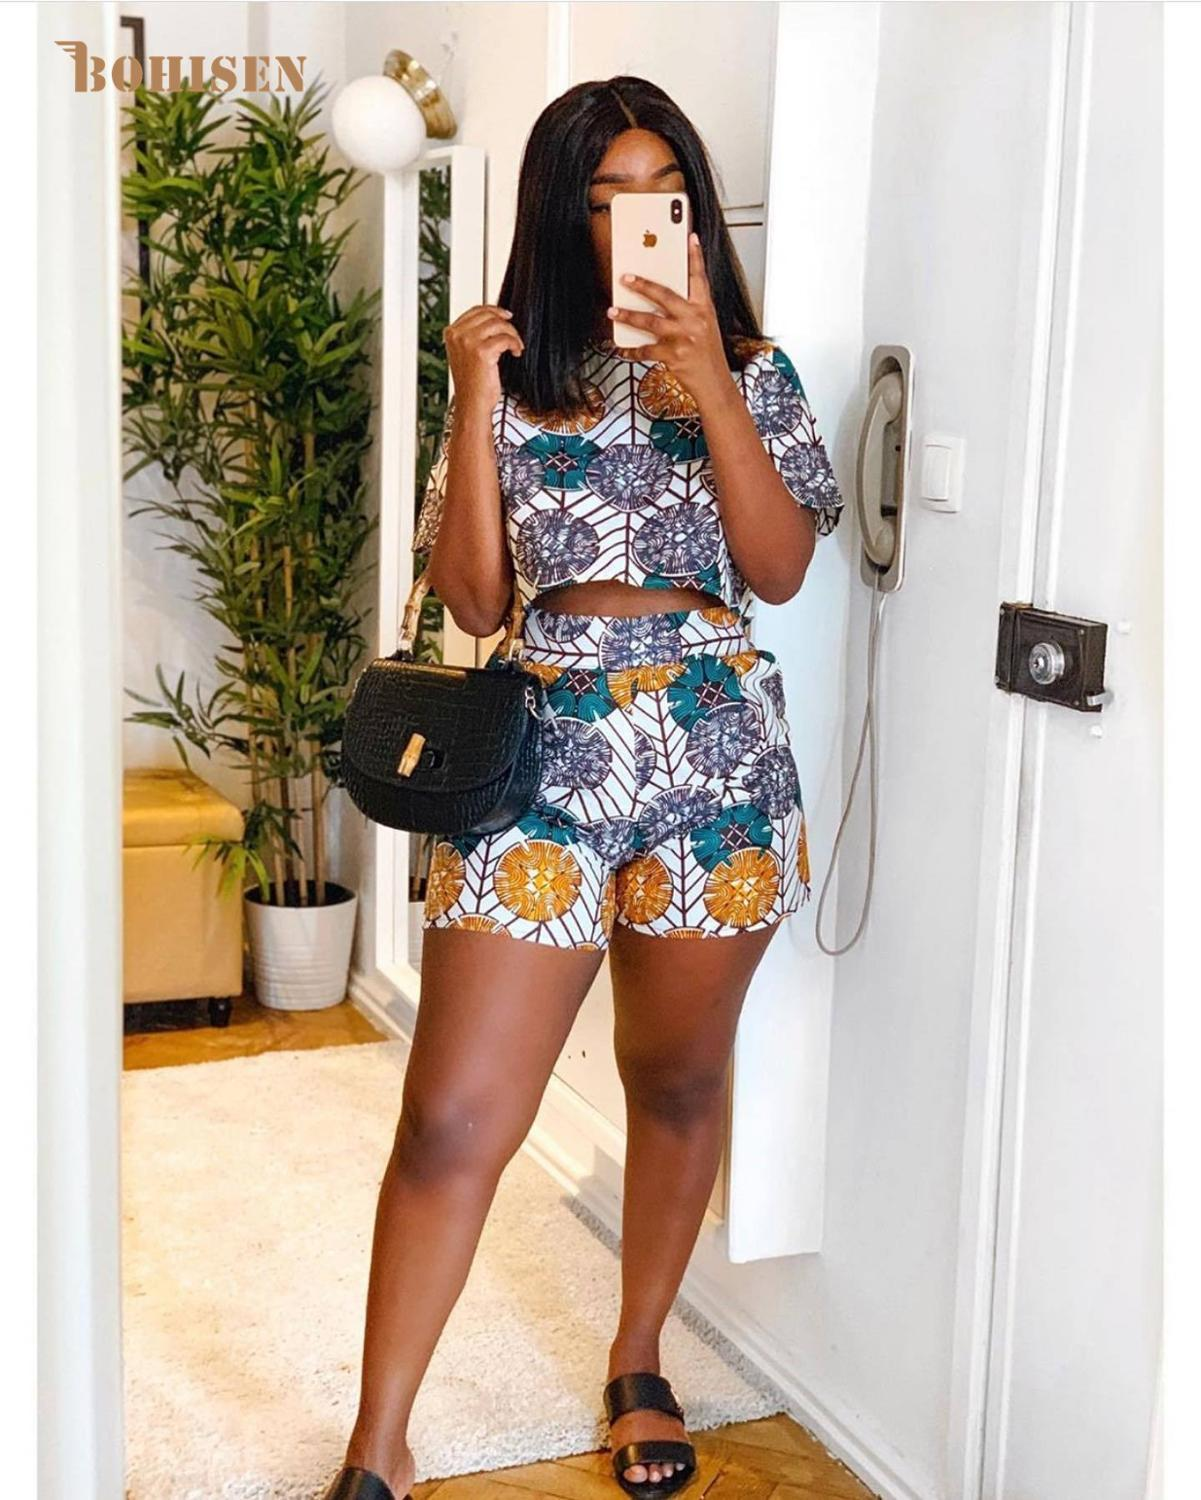 Bohisen African Dresses For Women Short Sleeve Top Shorts Dashiki Woman Suits  African Clothes